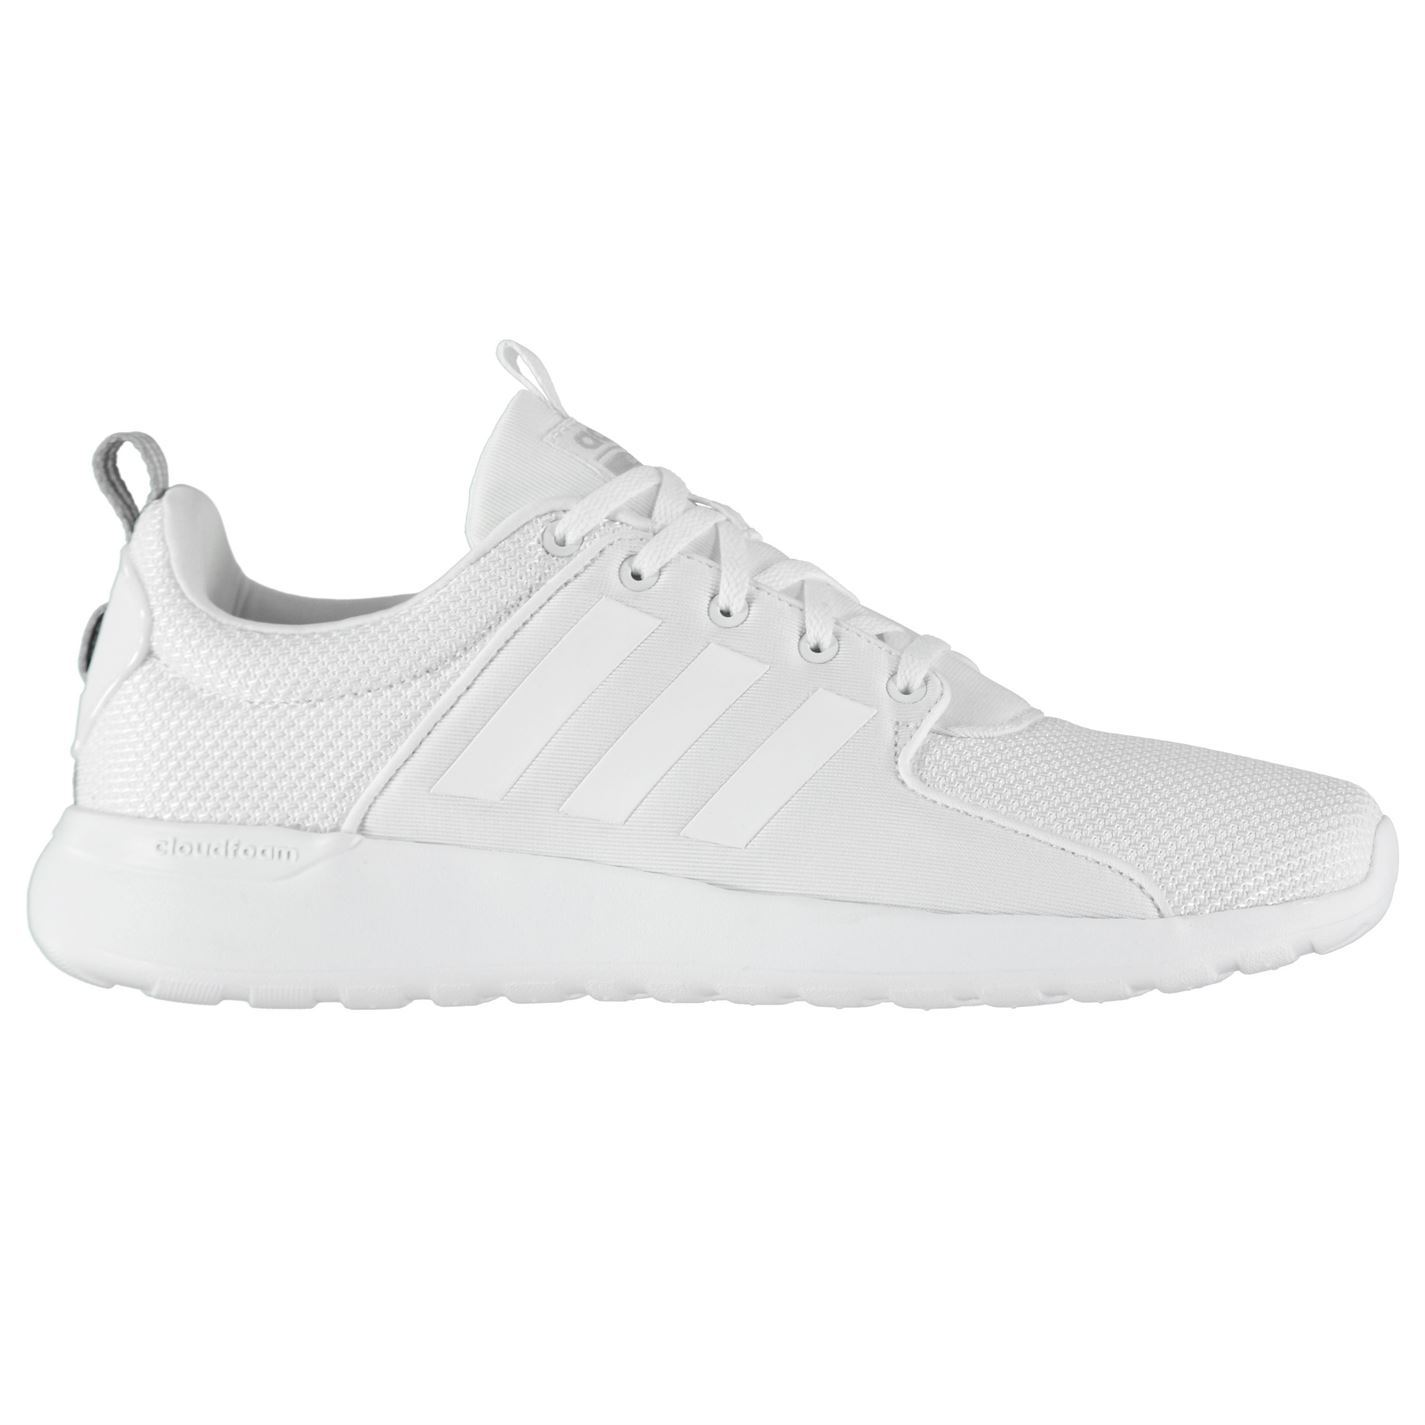 adidas cloudfoam lite racer mens slip on trainers